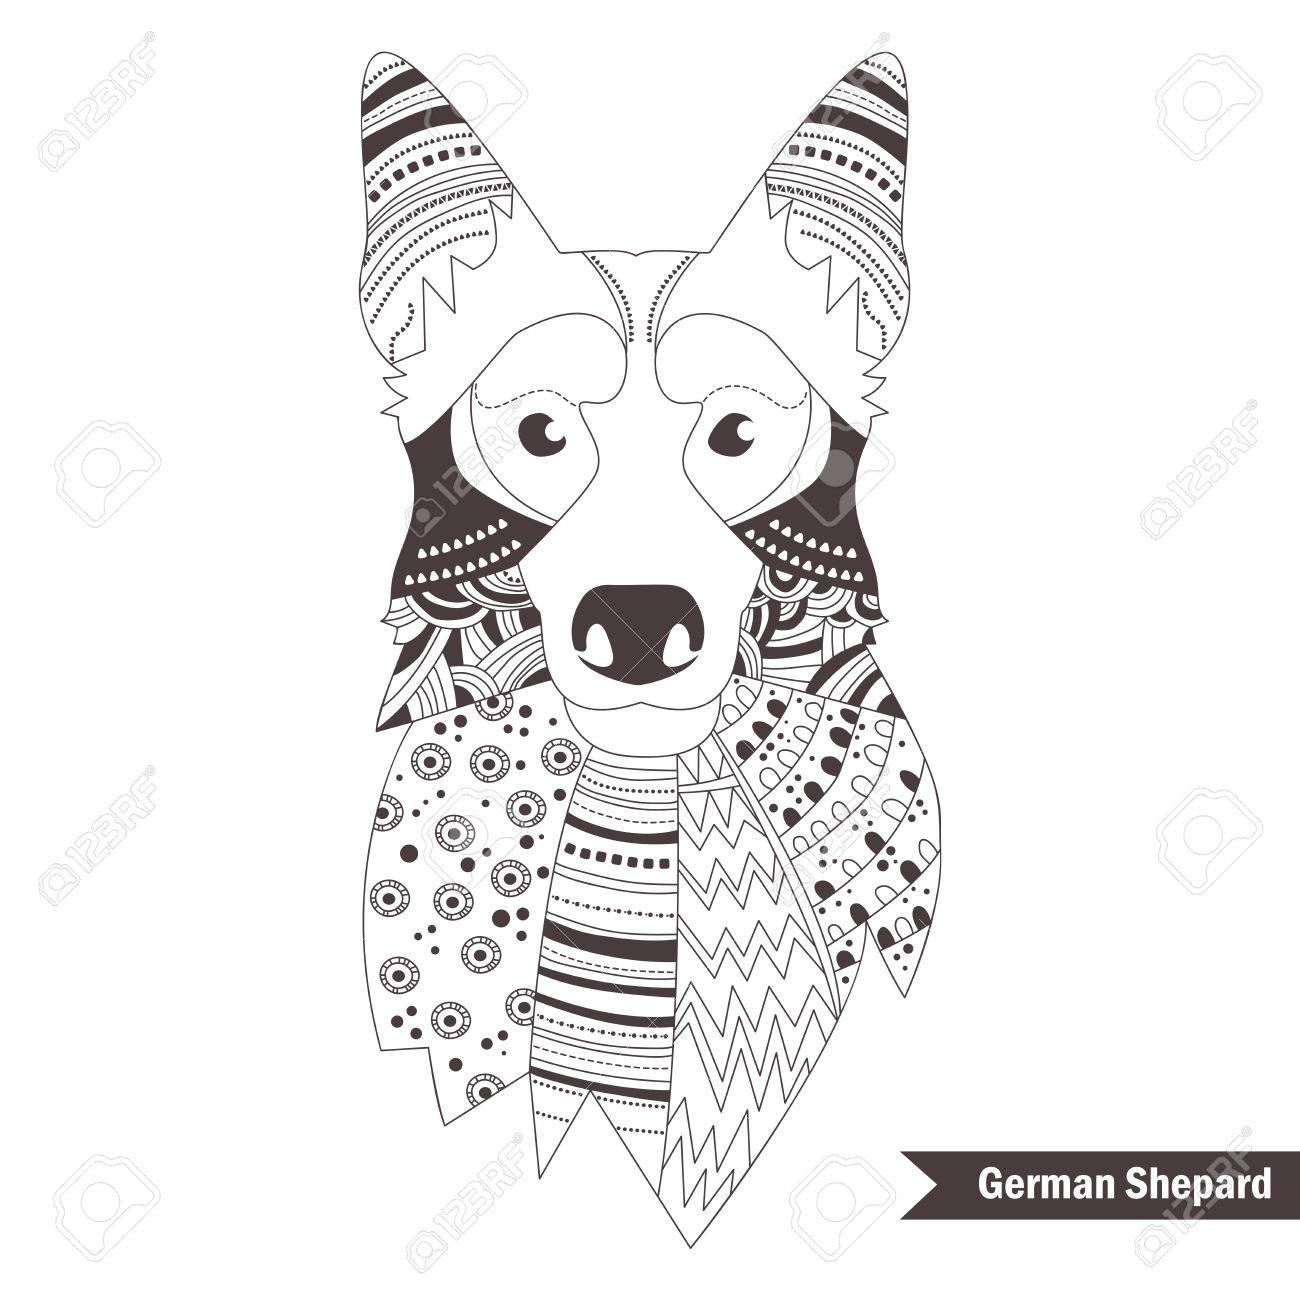 german shepherd coloring book for adult antistress coloring pages hand drawn vector isolated - German Shepherd Coloring Pages